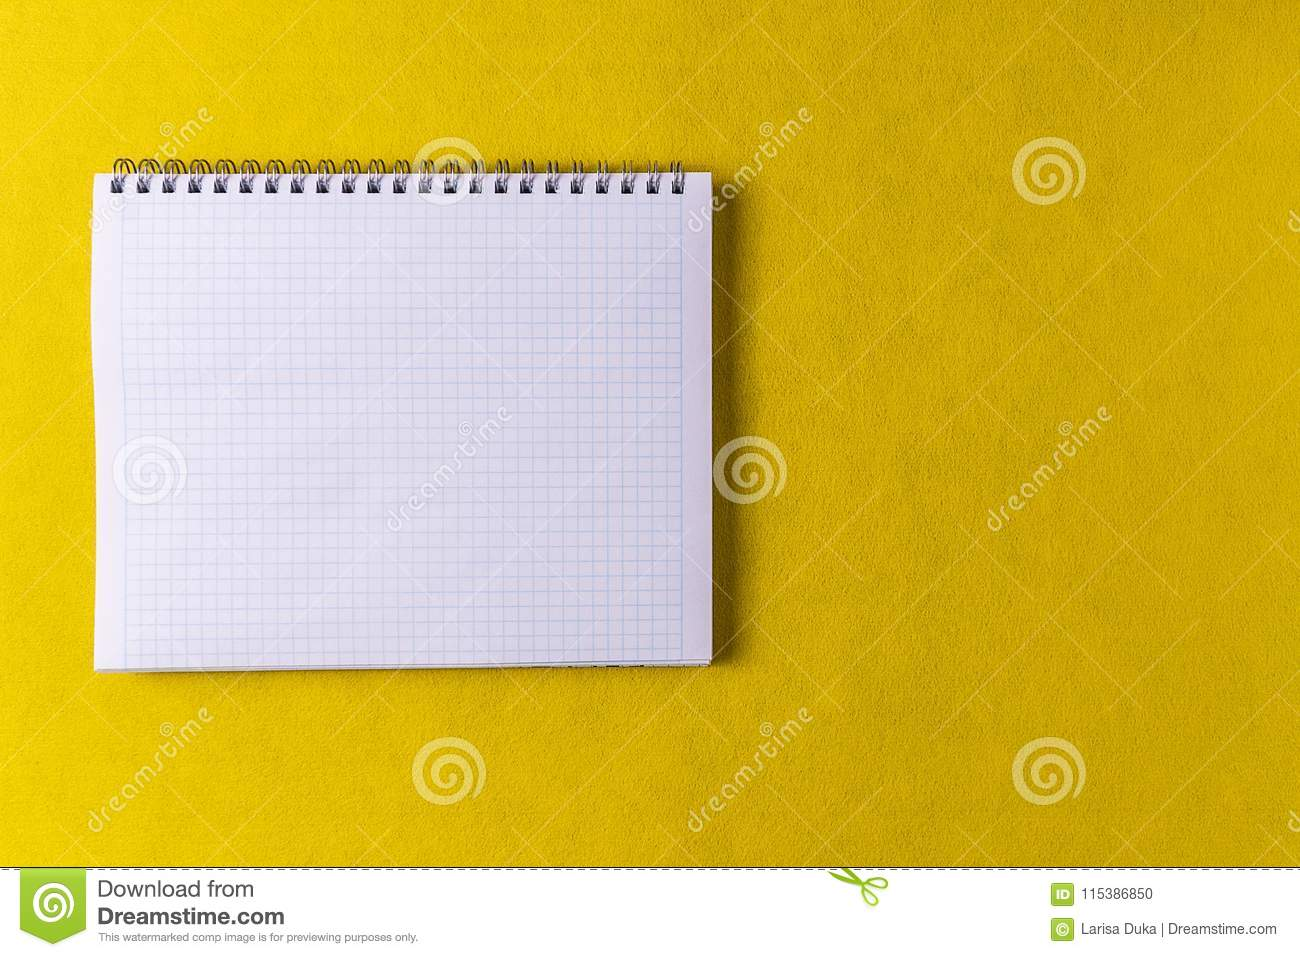 Mockup Yellow Paper Background And Opened Notebook Stock Photo